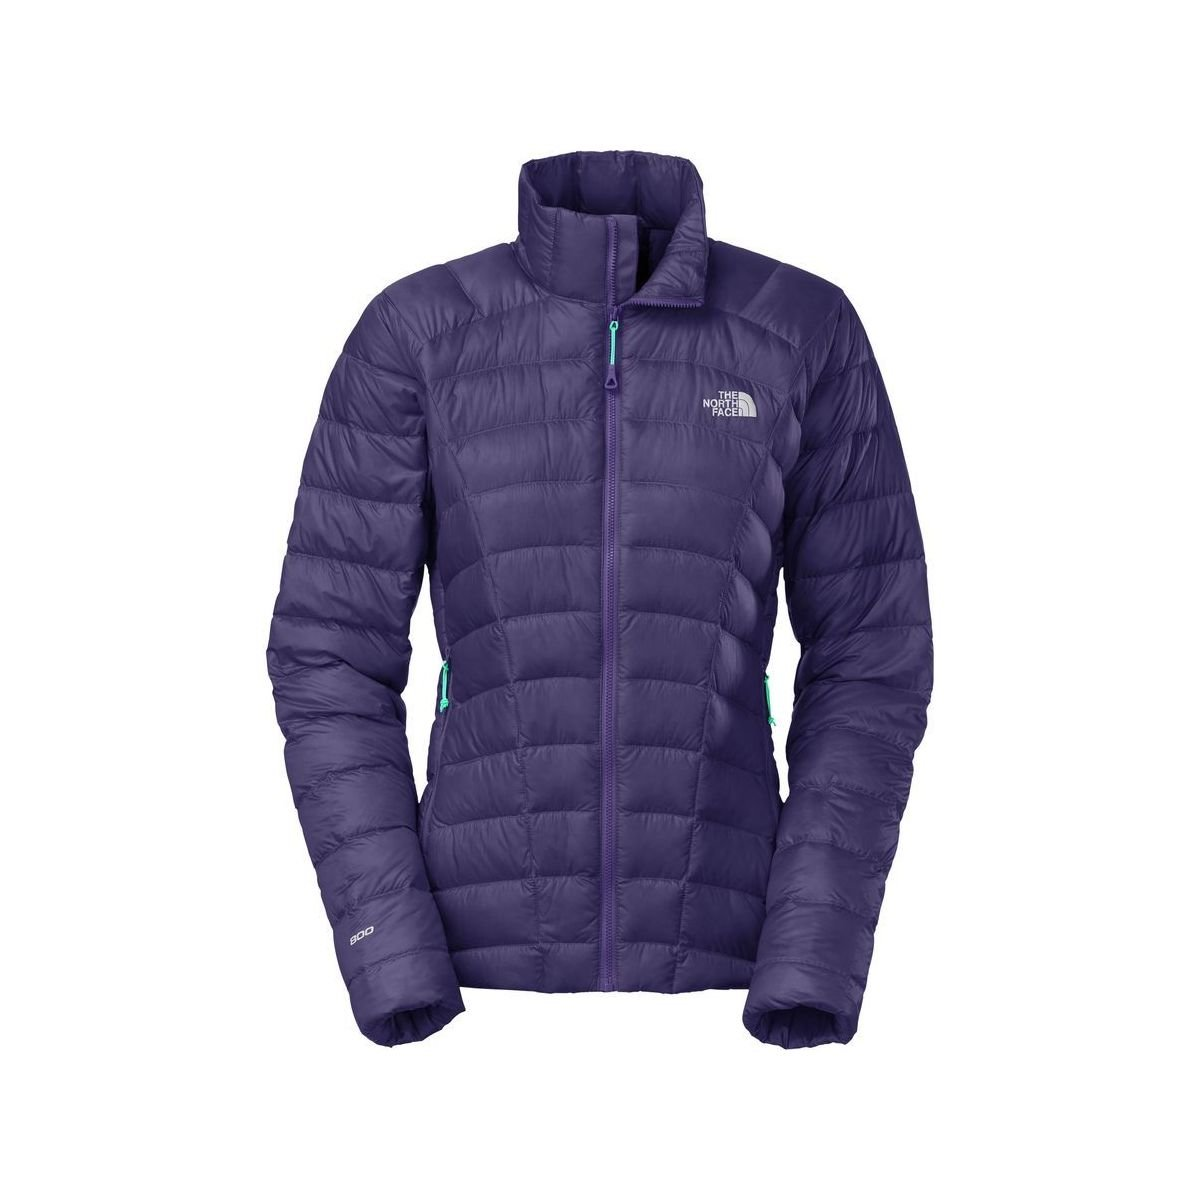 Quince Pro The North Face- Garnet Purple jacket